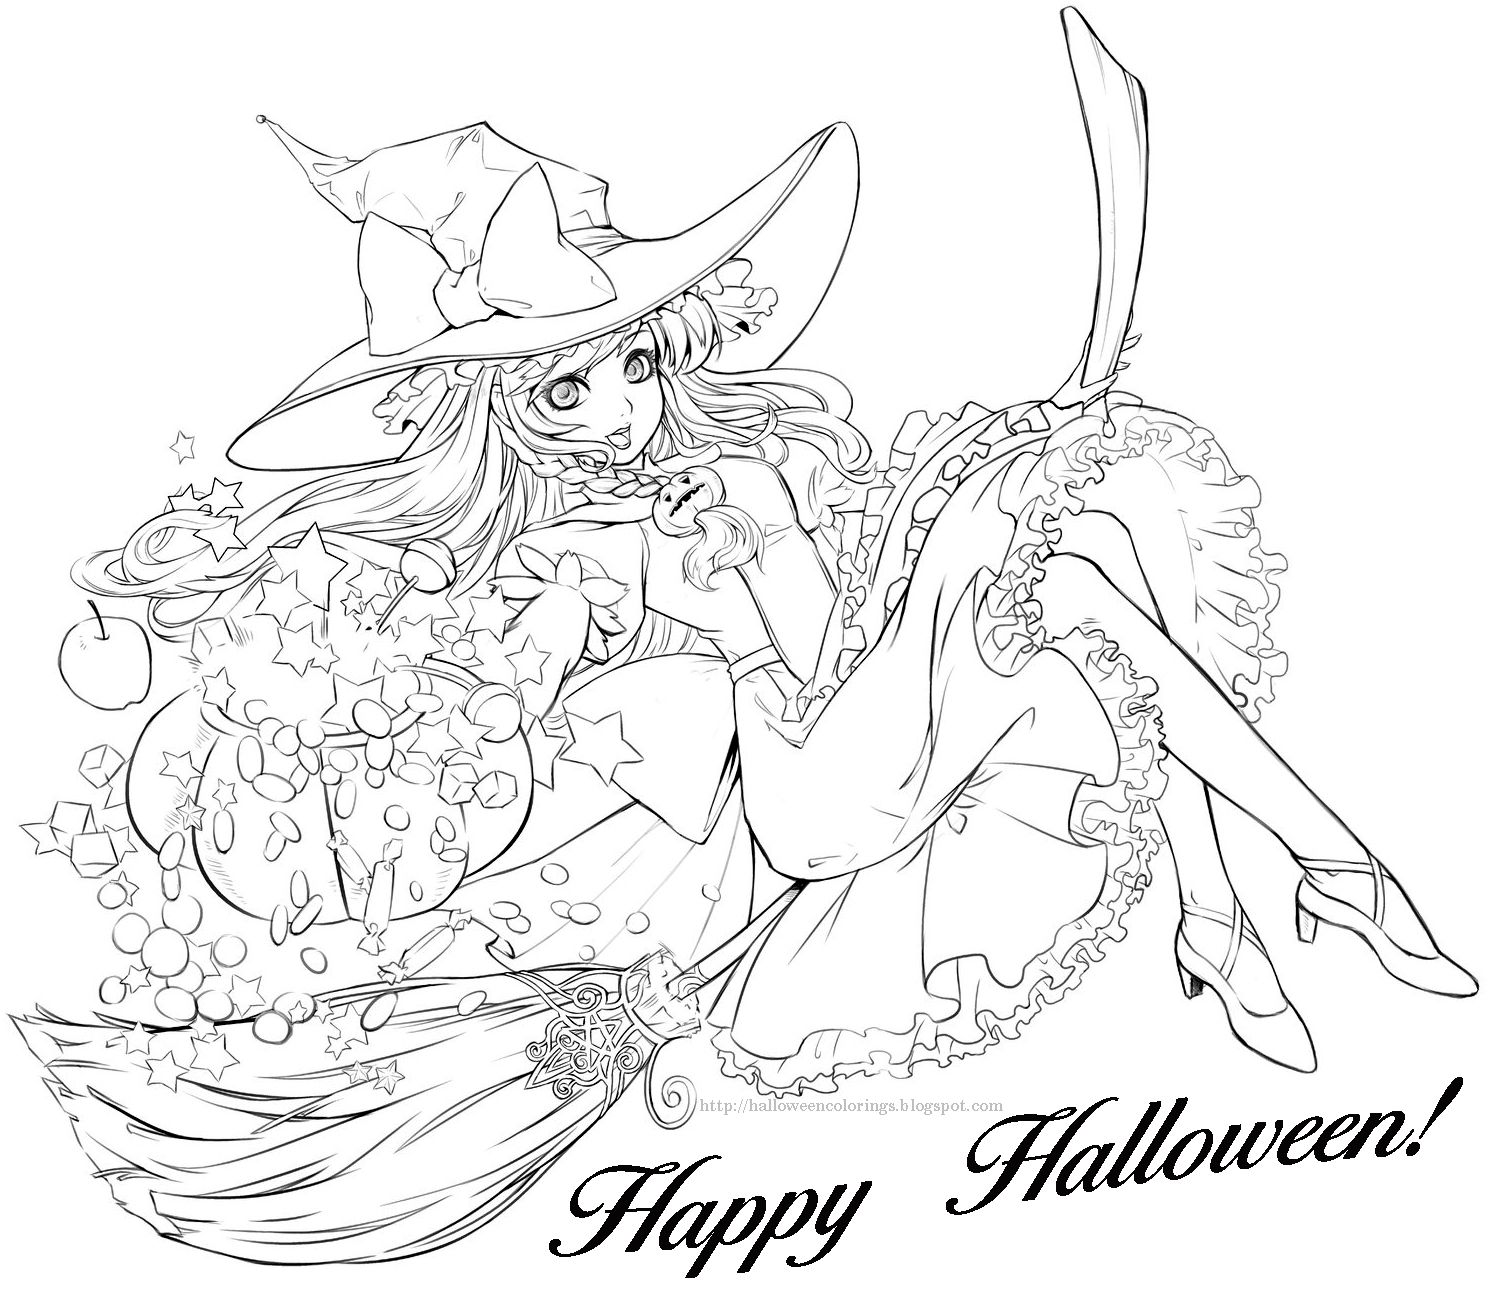 HALLOWEEN COLORING Page Of A Gorgeous Witch On Broomstick